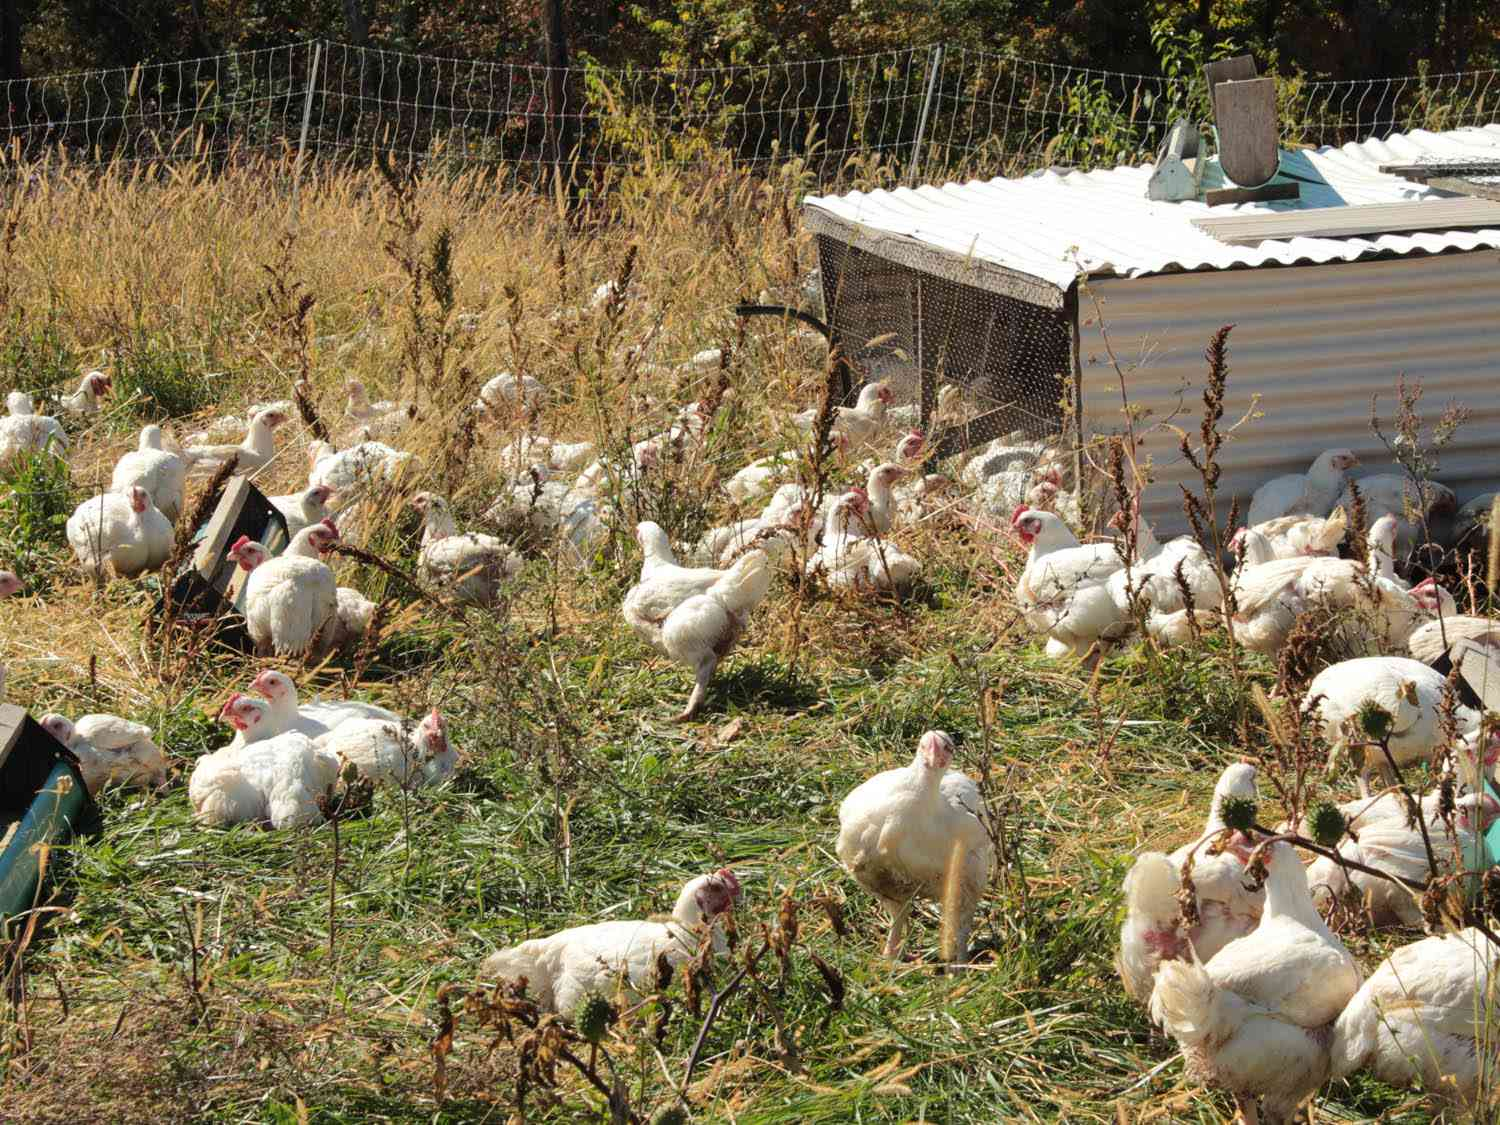 Chickens pecking in a grassy field with a hen house in the background.